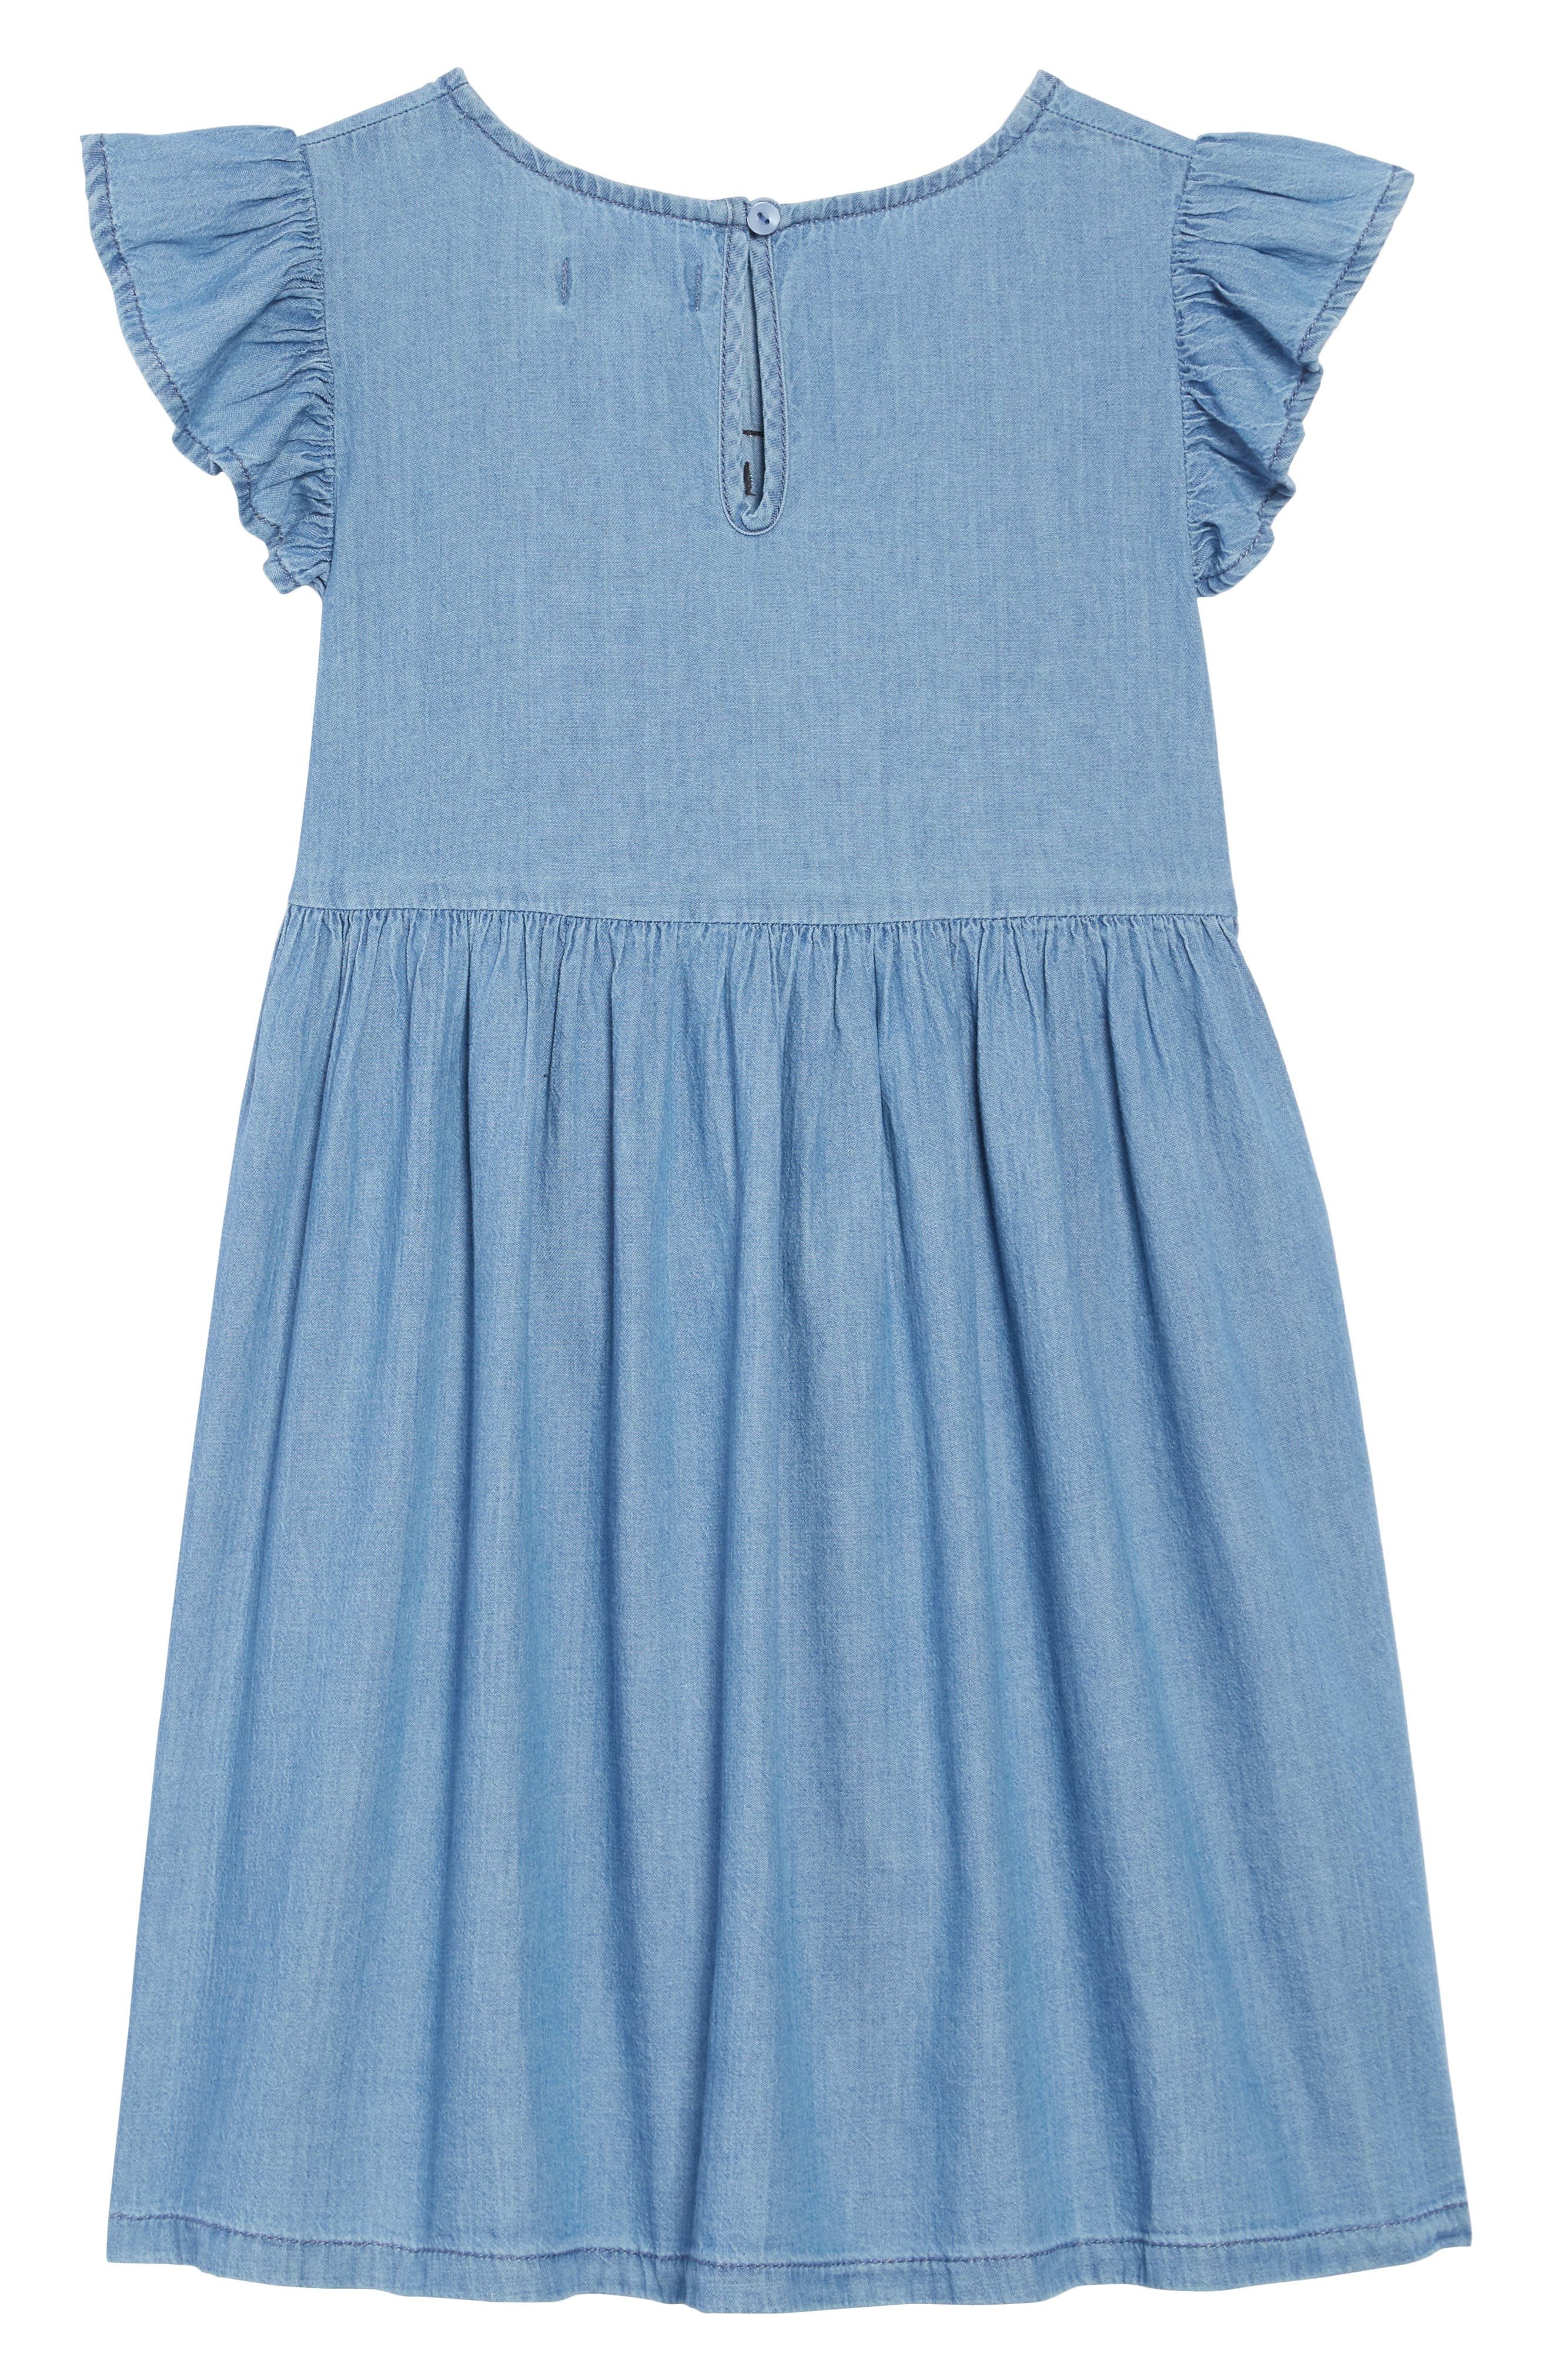 Embroidered Chambray Dress,                             Alternate thumbnail 2, color,                             450